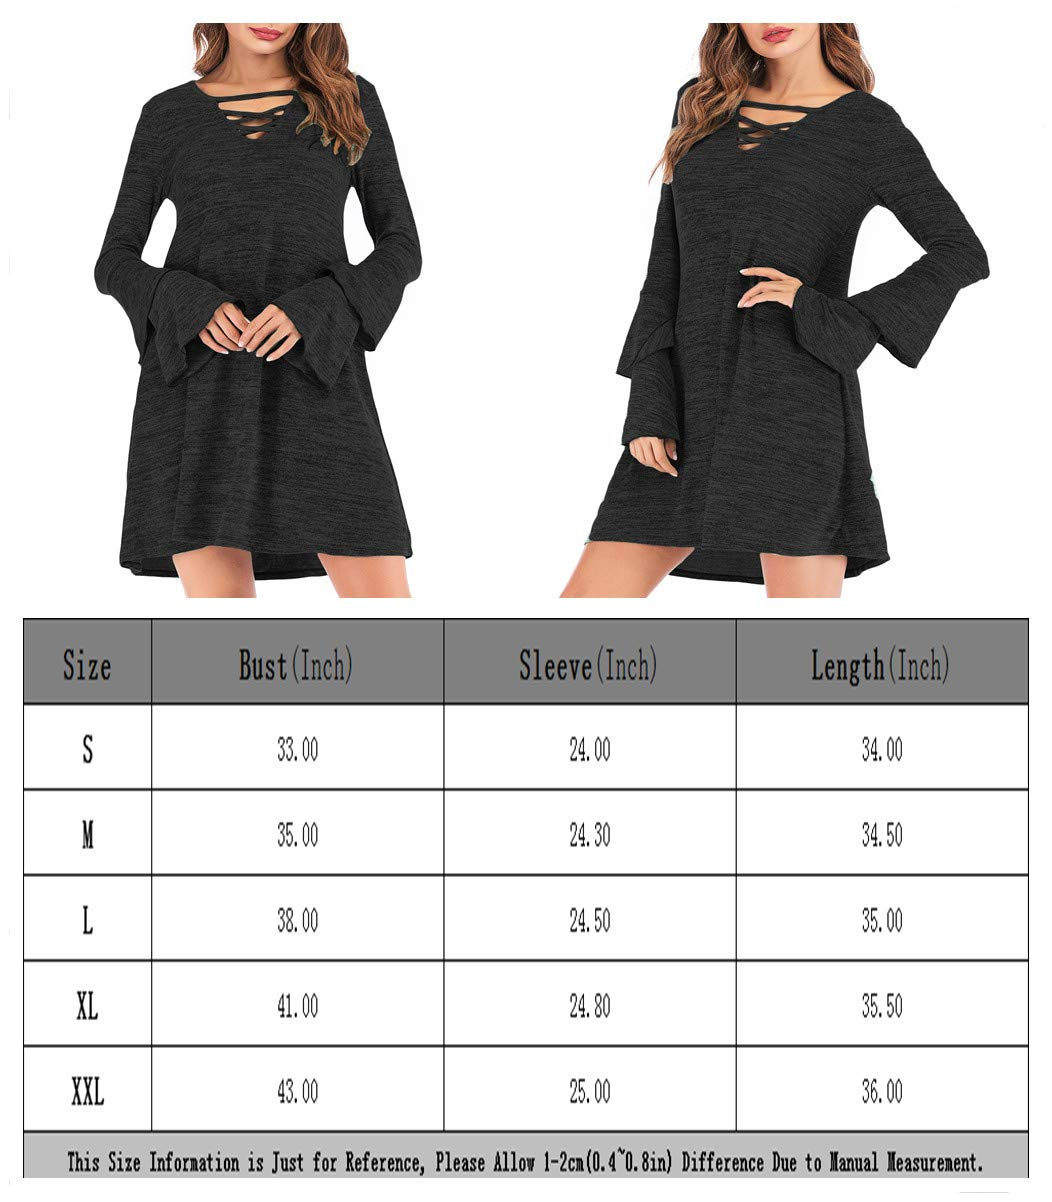 Eanklosco Women's Sweater Dress Flare Long Sleeve Knit Jumper Tops Criss Cross V Neck Loose Swing Tunic Dress (Black, XL)